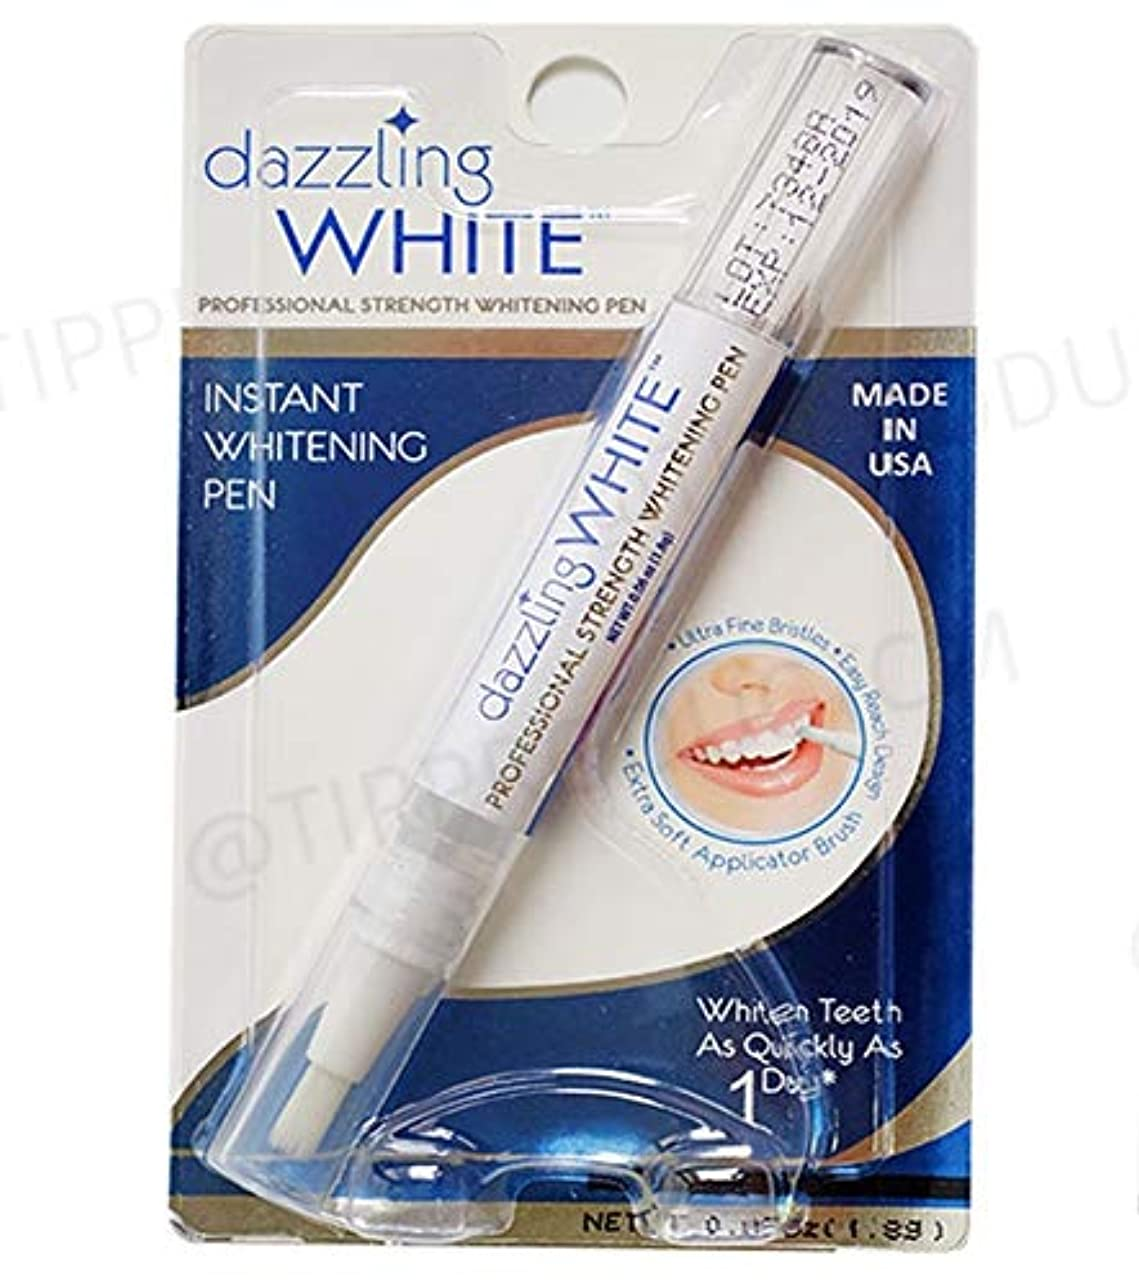 言うまでもなく意図的アナリストTeeth Whitening Rotary Peroxide Gel Tooth Cleaning Bleaching Kit Dental Dazzling White Teeth Whitening Pen Blanqueador...